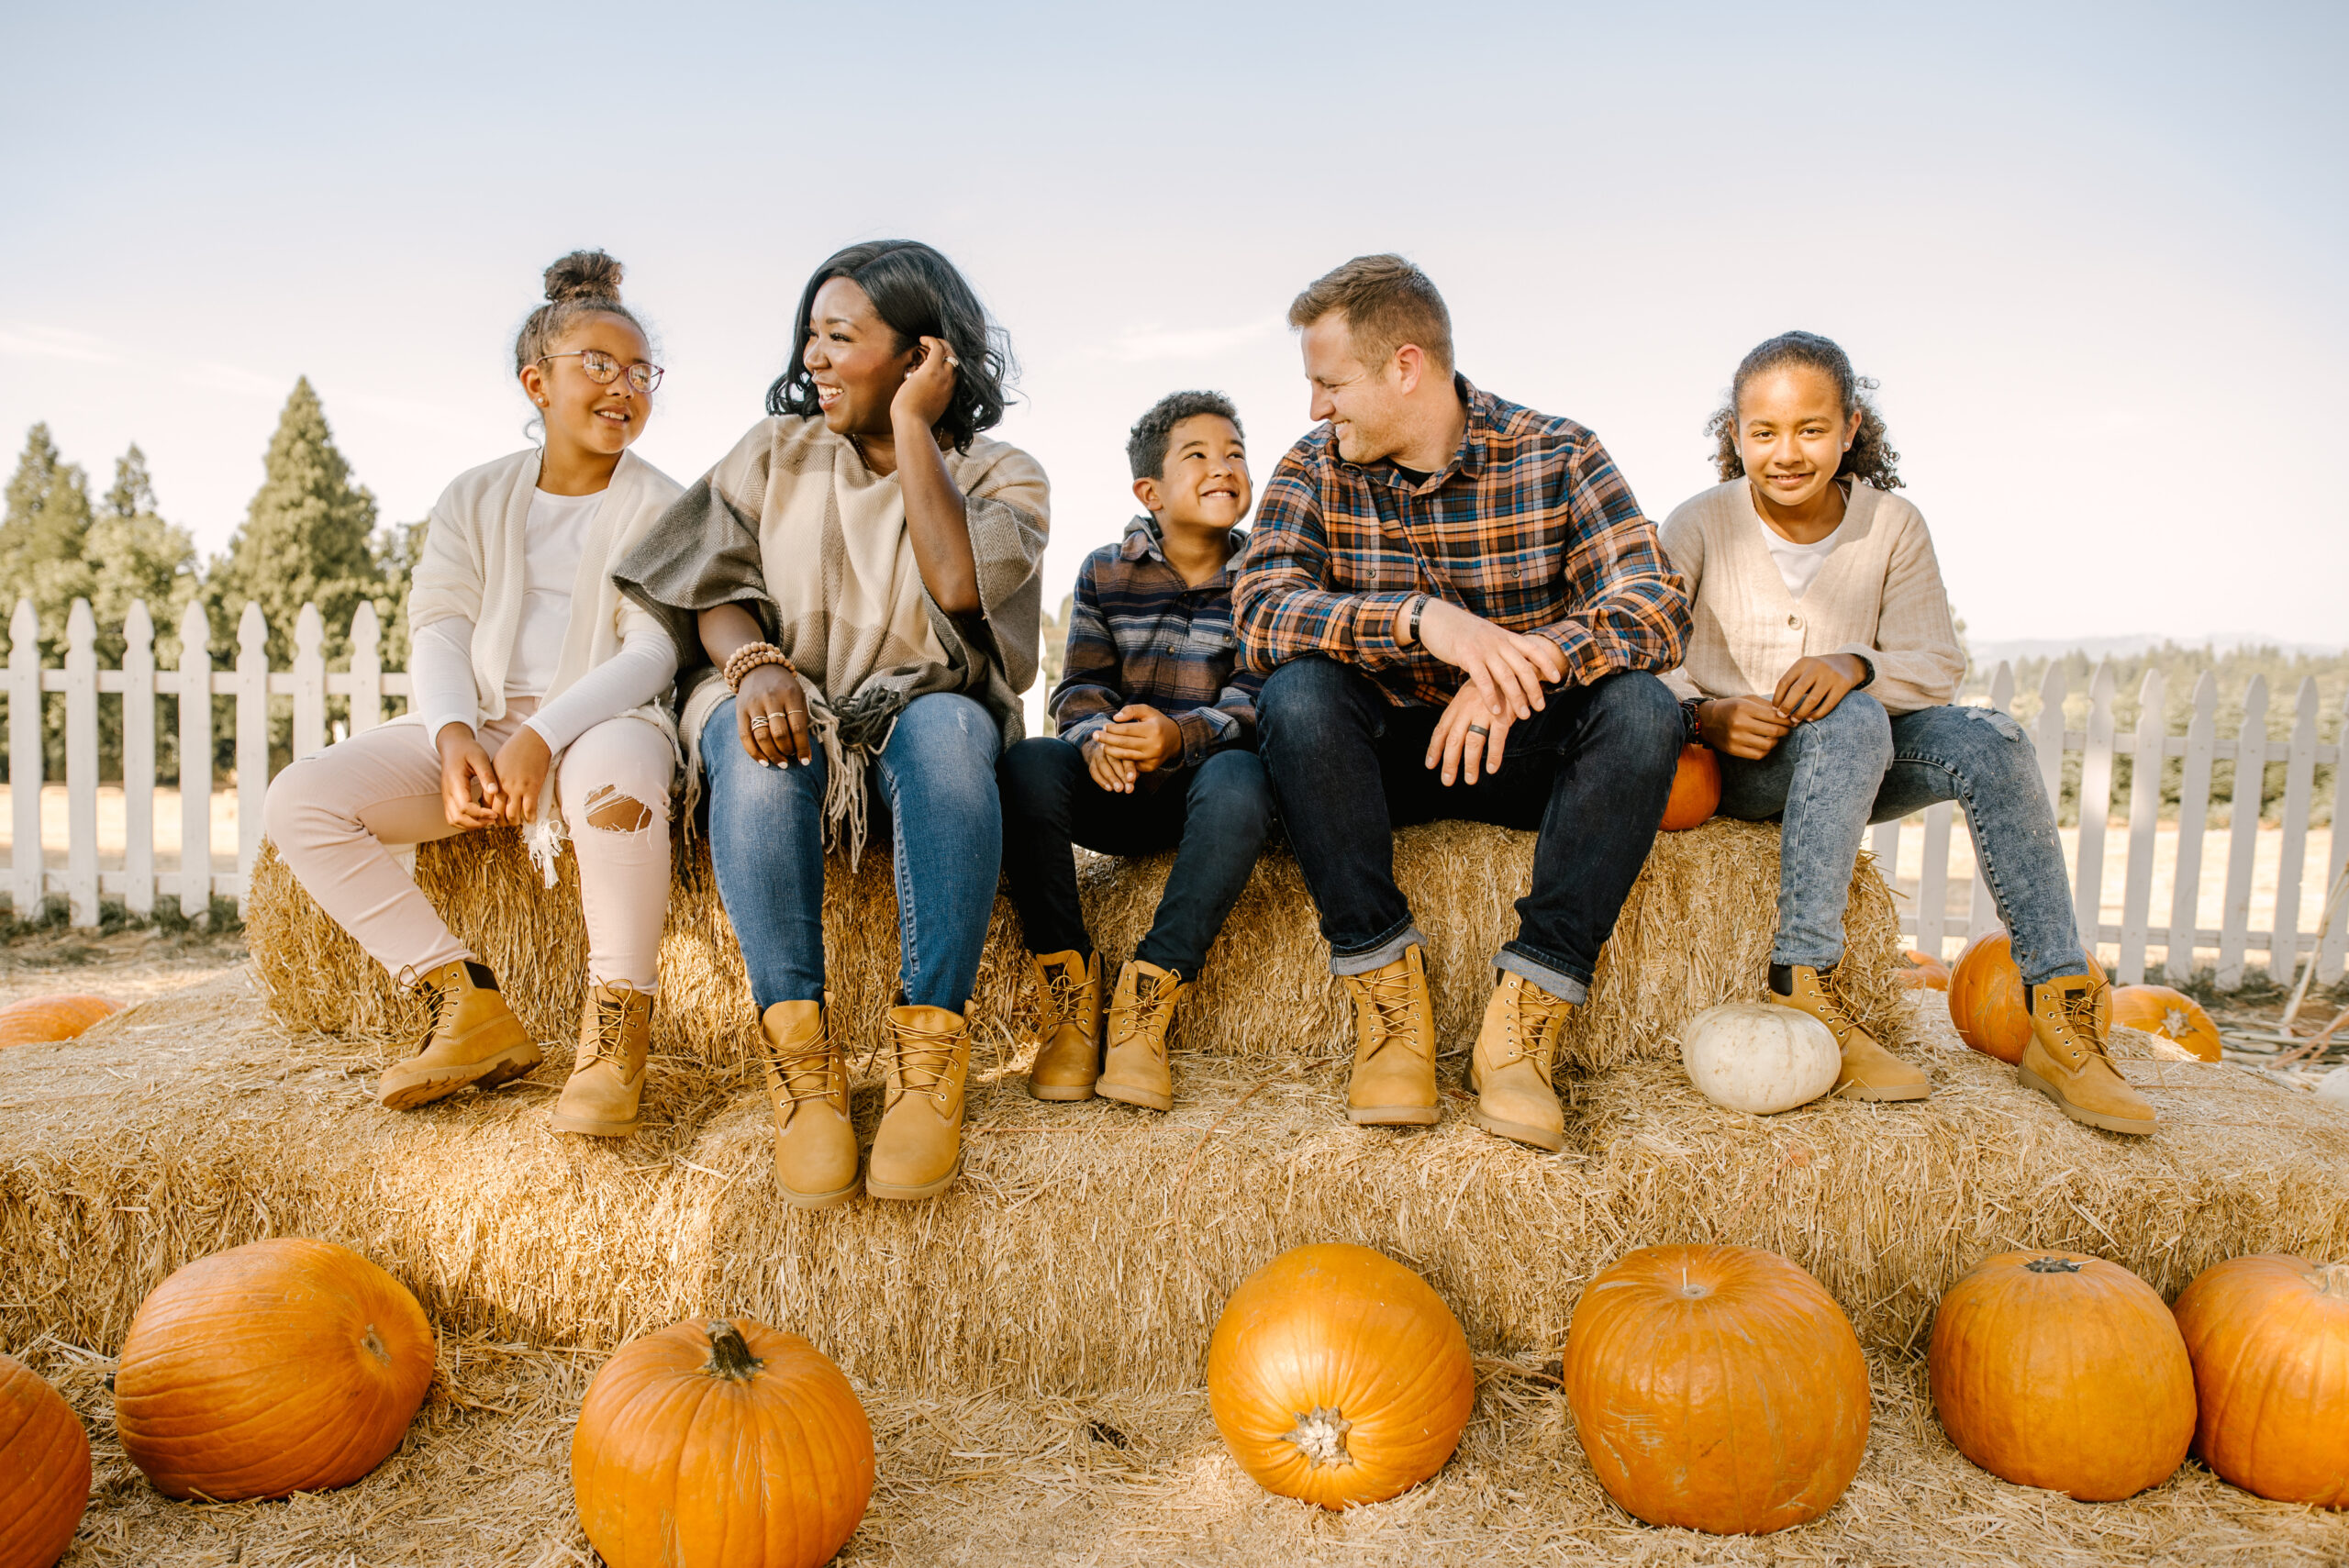 Ruthie Ridley Blog 5 Pumpkin Patches To Visit In NorCal